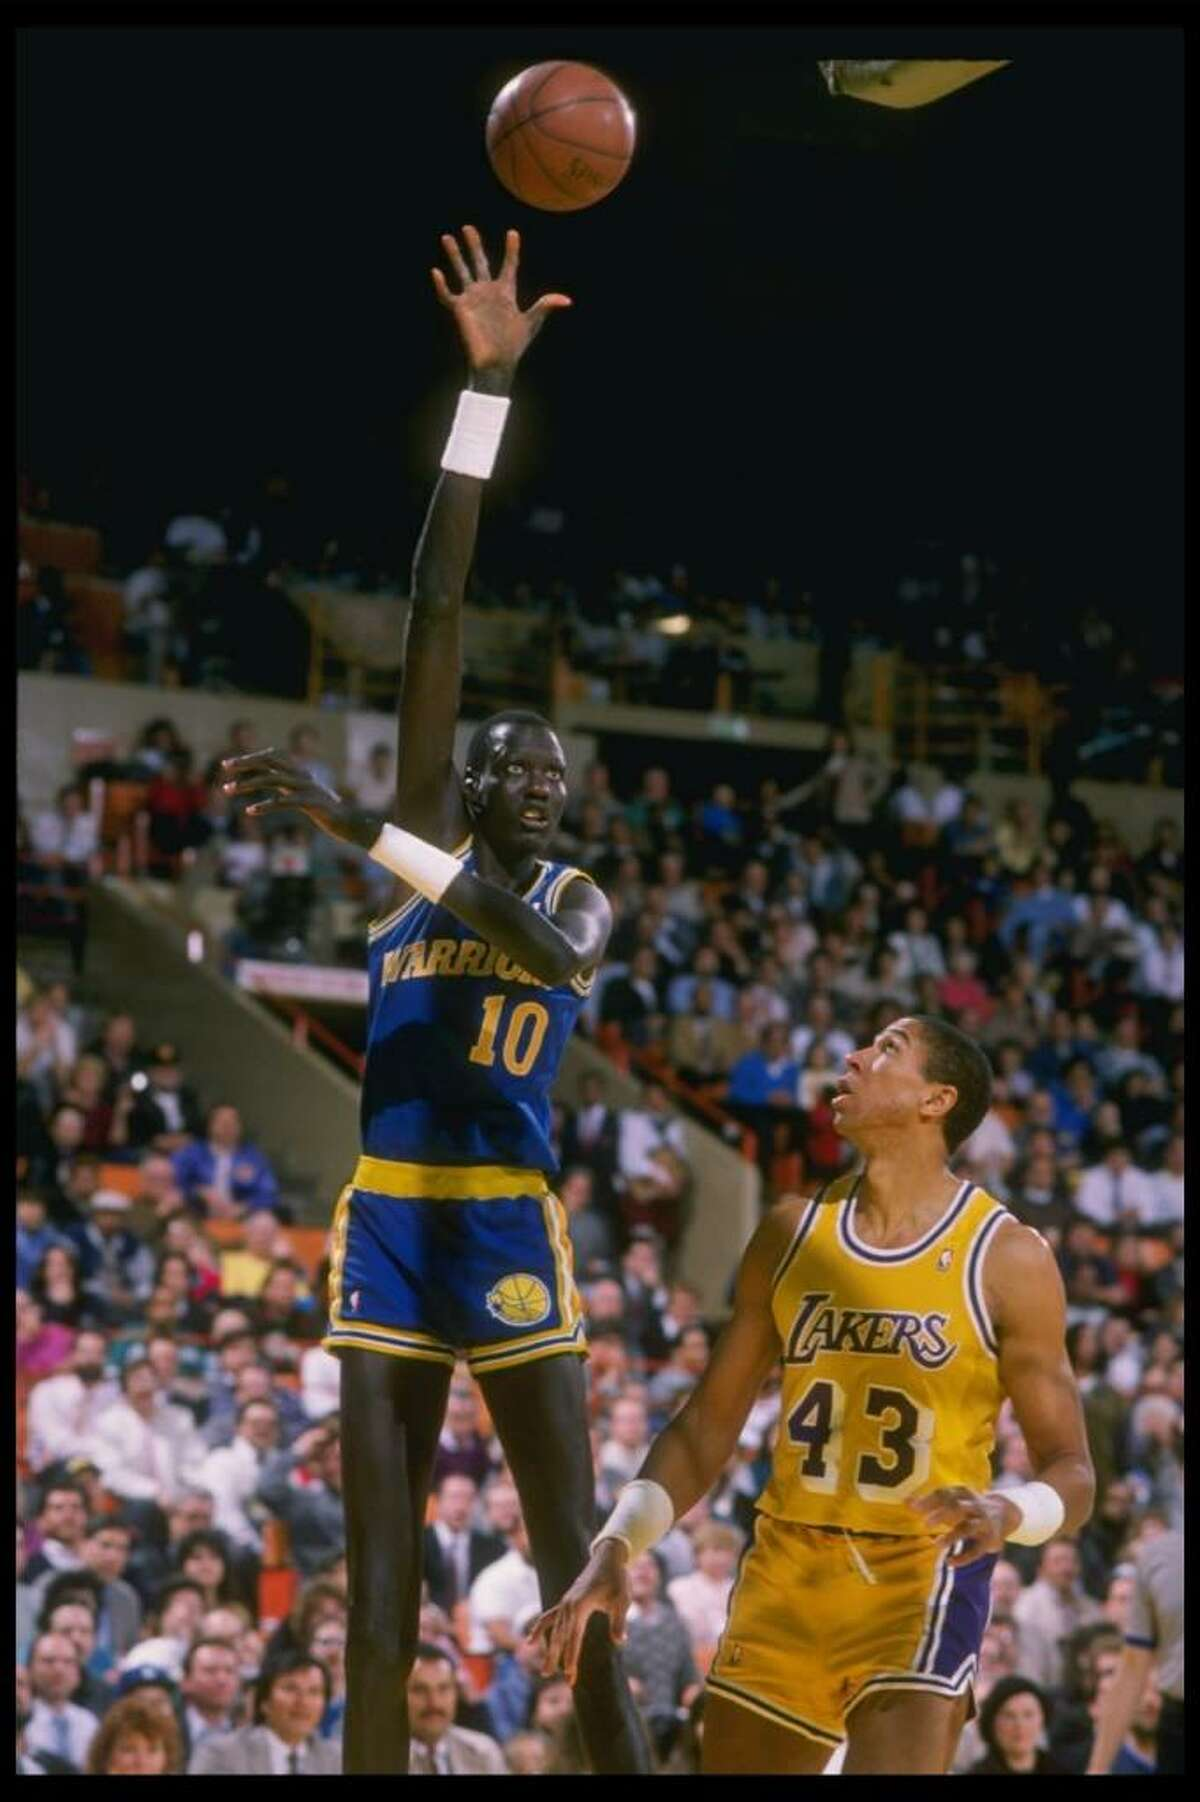 1988-1989: Center Manute Bol of the Golden State Warriors in action against Mychal Thompson of the Los Angeles Lakers (right) during a game at the Great Western Forum in Inglewood, California. Mandatory Credit: Allen Steele /Allsport